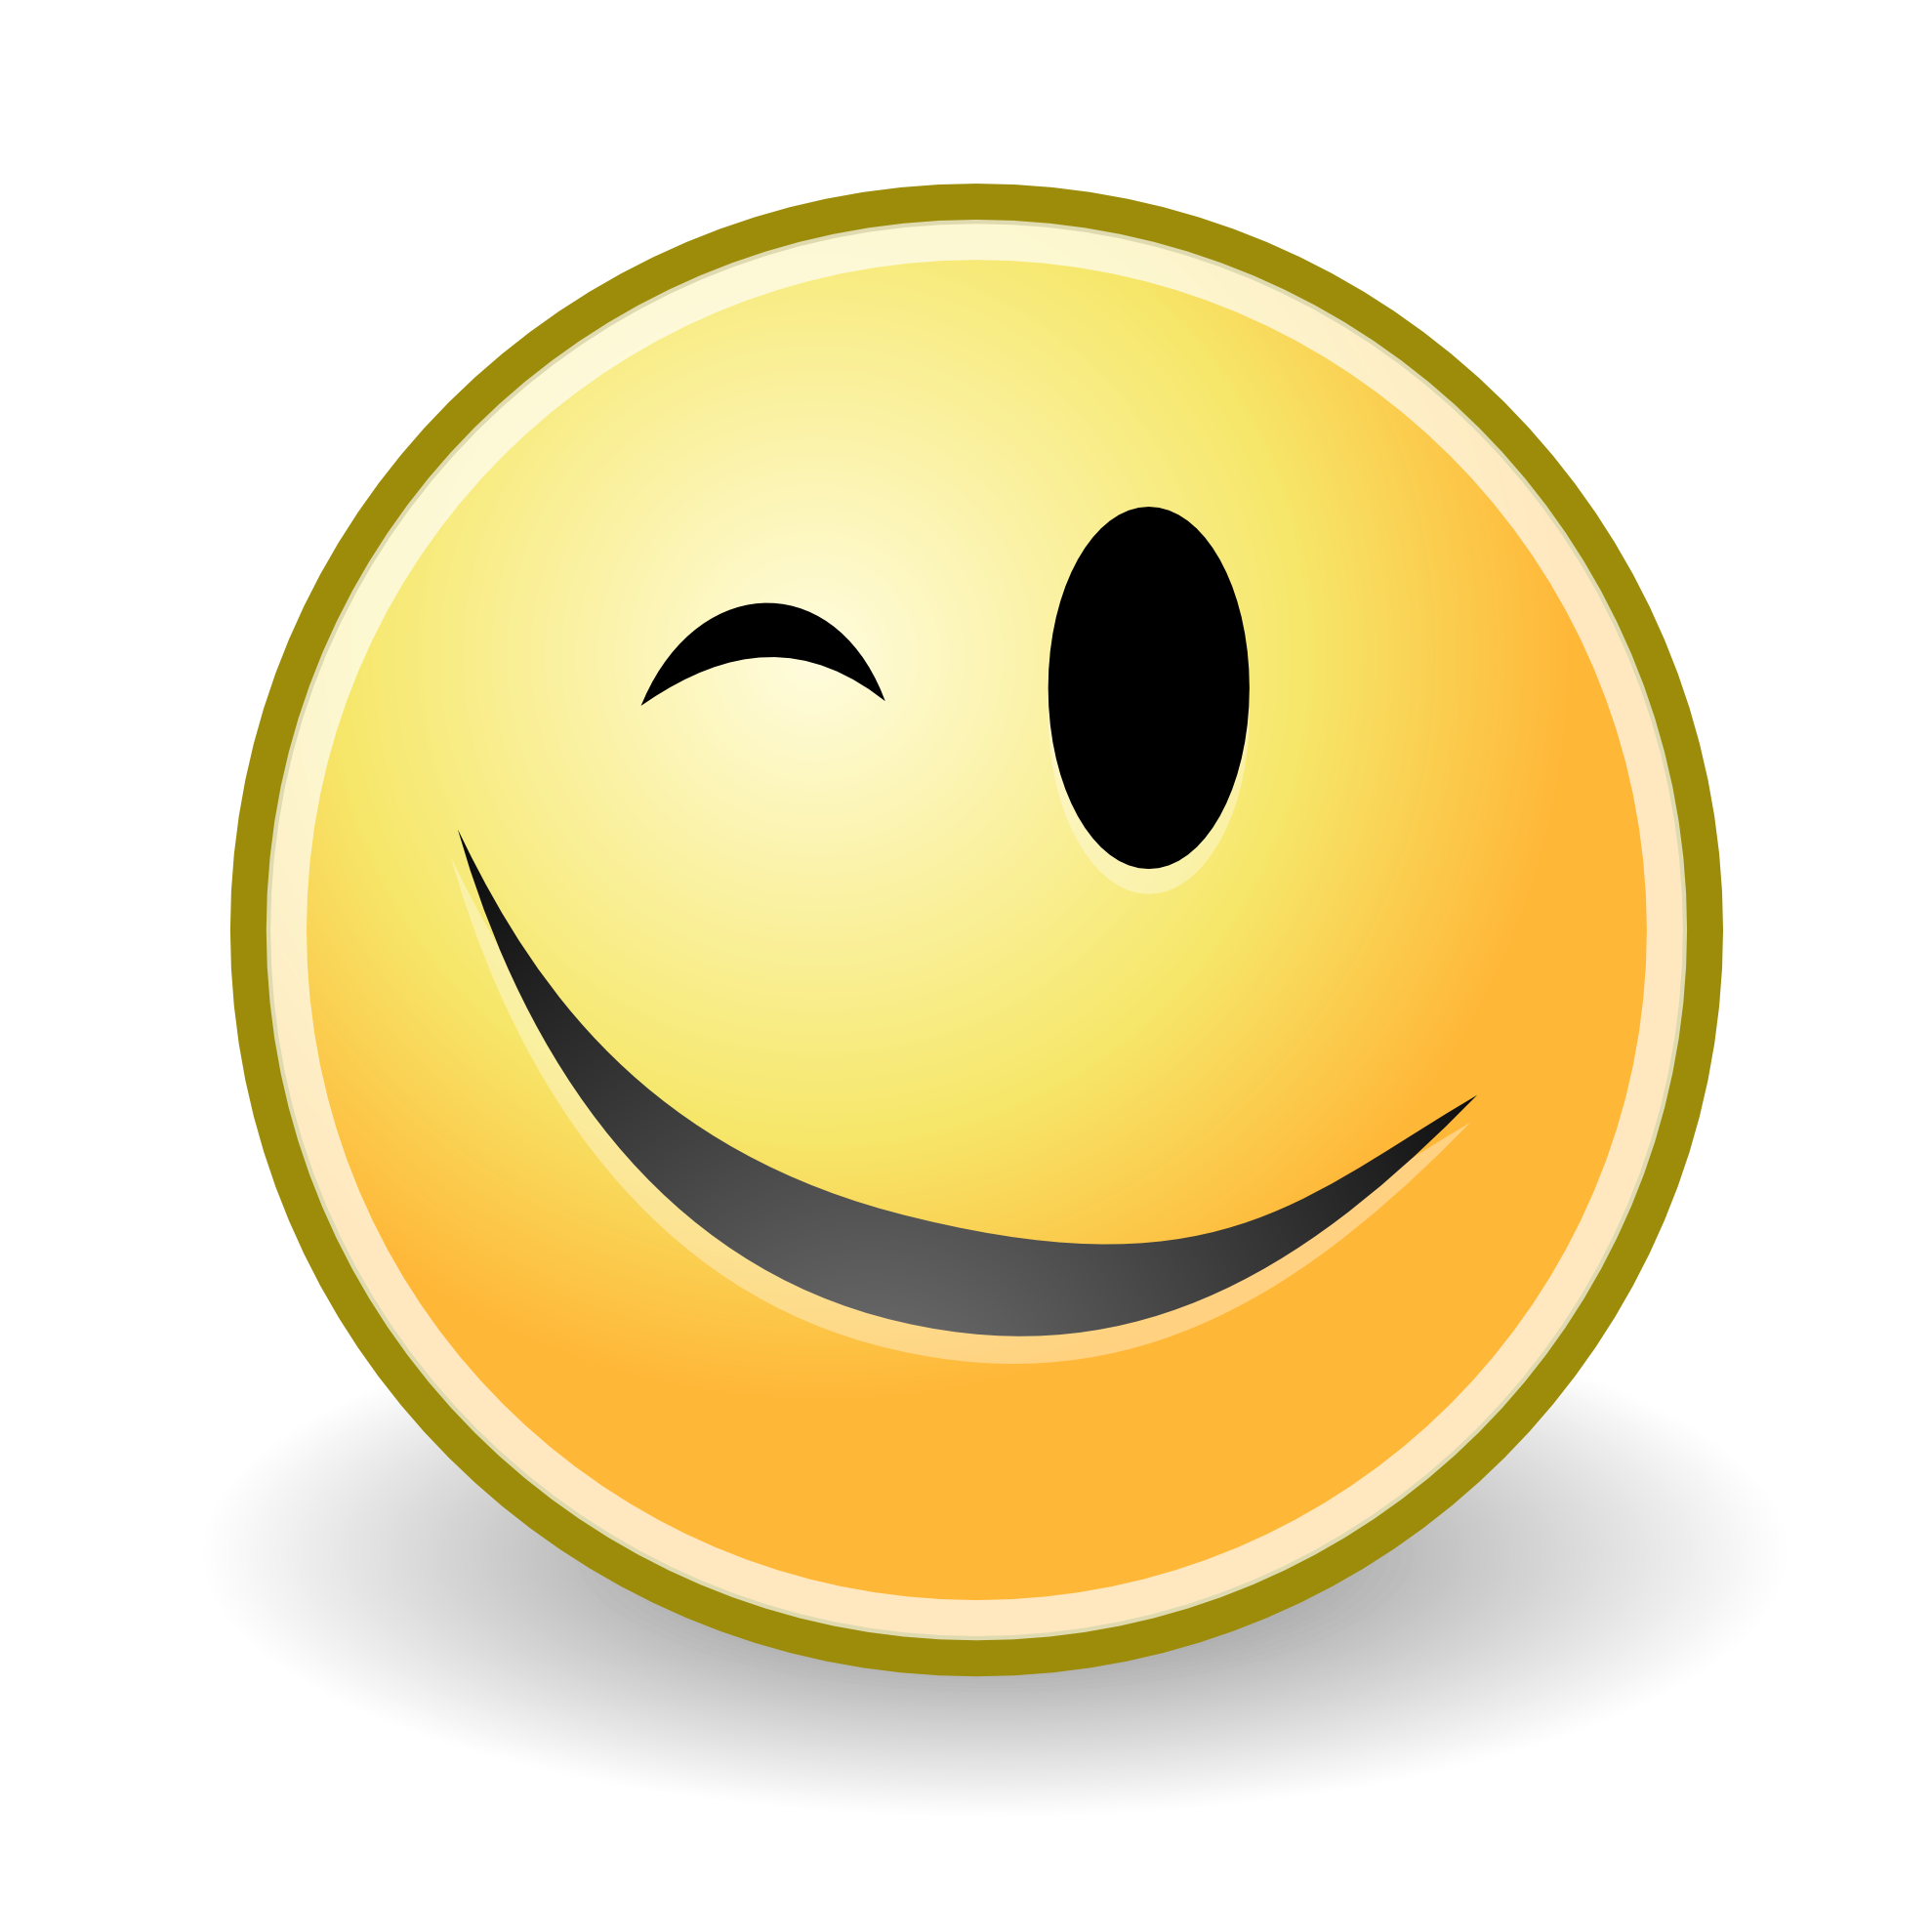 Winking Smiley Face Clip Art N30 free image.